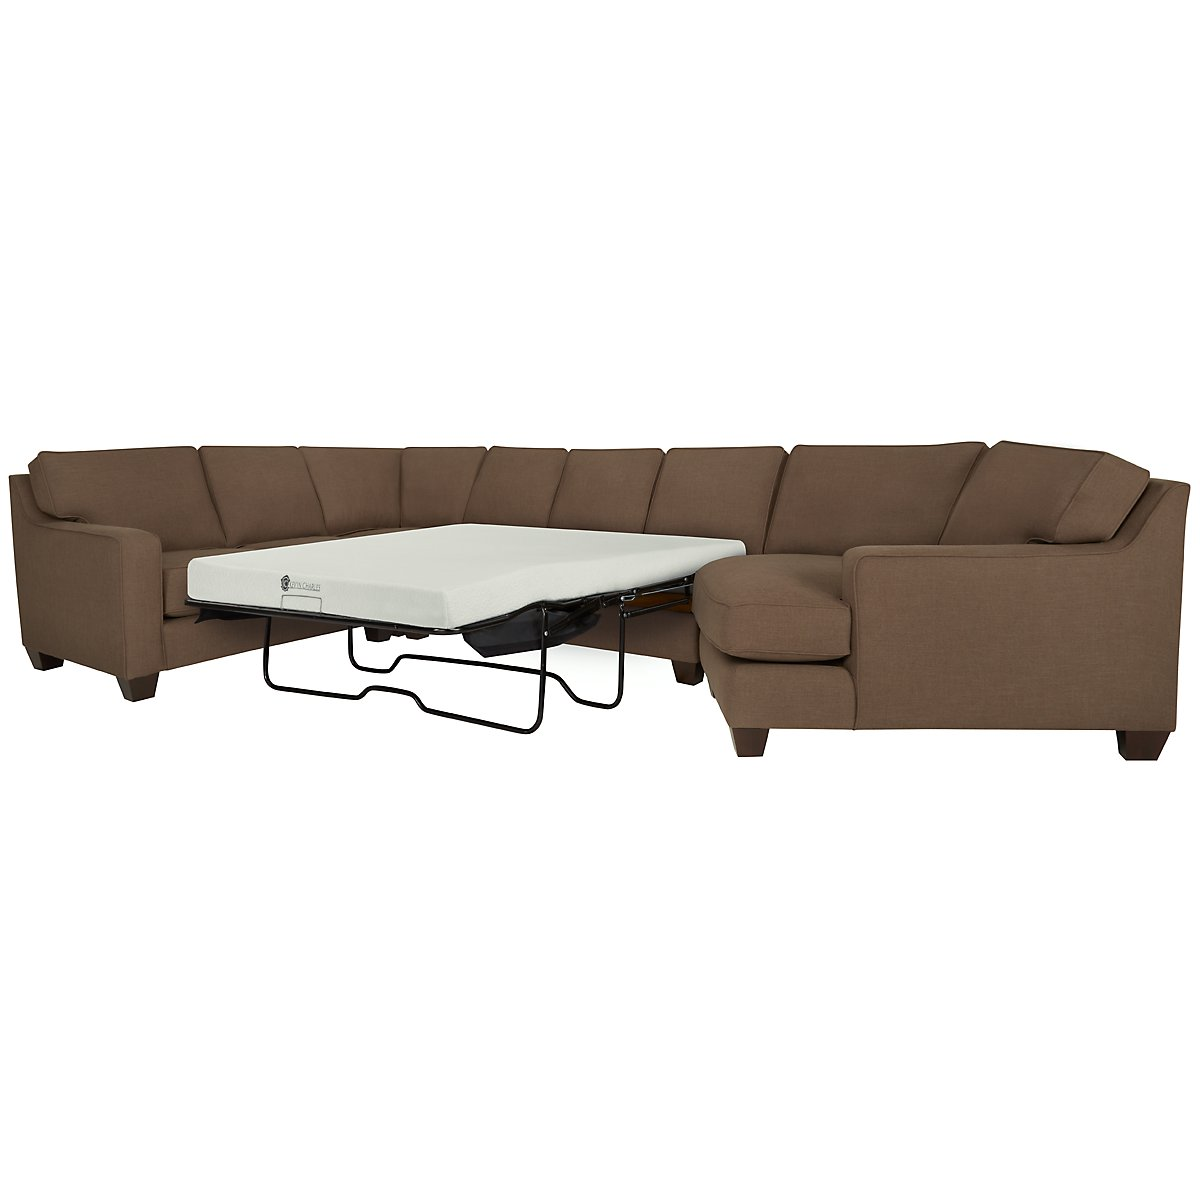 York Dark Brown Fabric Small Right Cuddler Memory Foam Sleeper Sectional